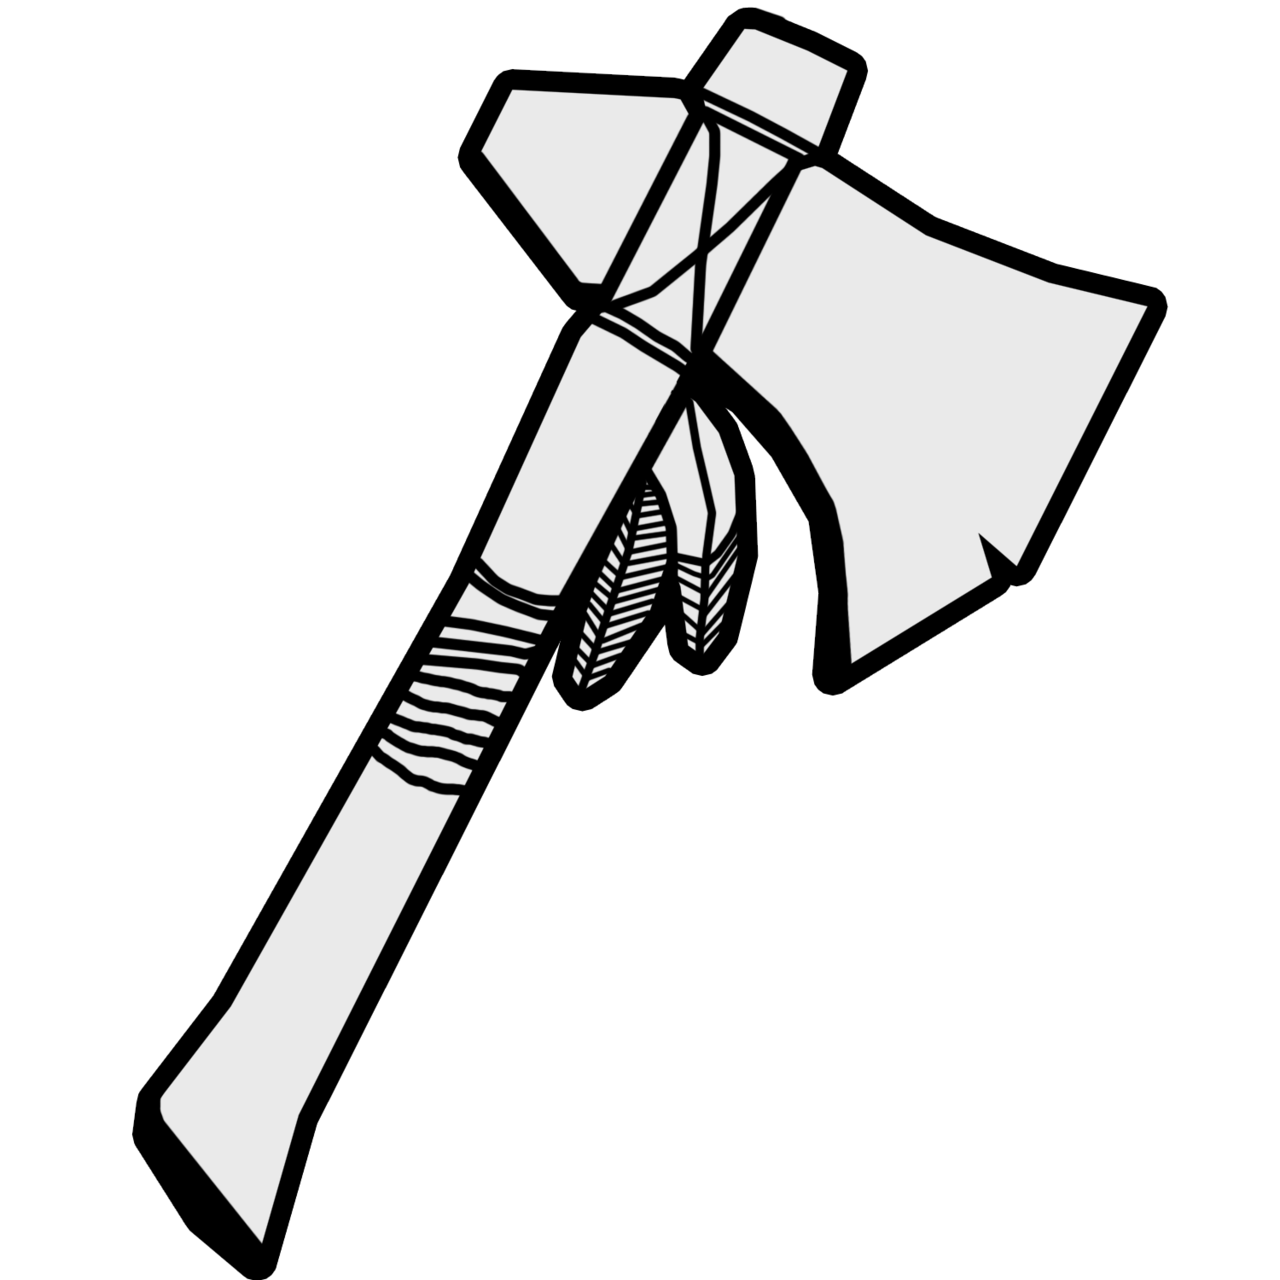 Weapon drawing tomahawk. Coloring page related keywords